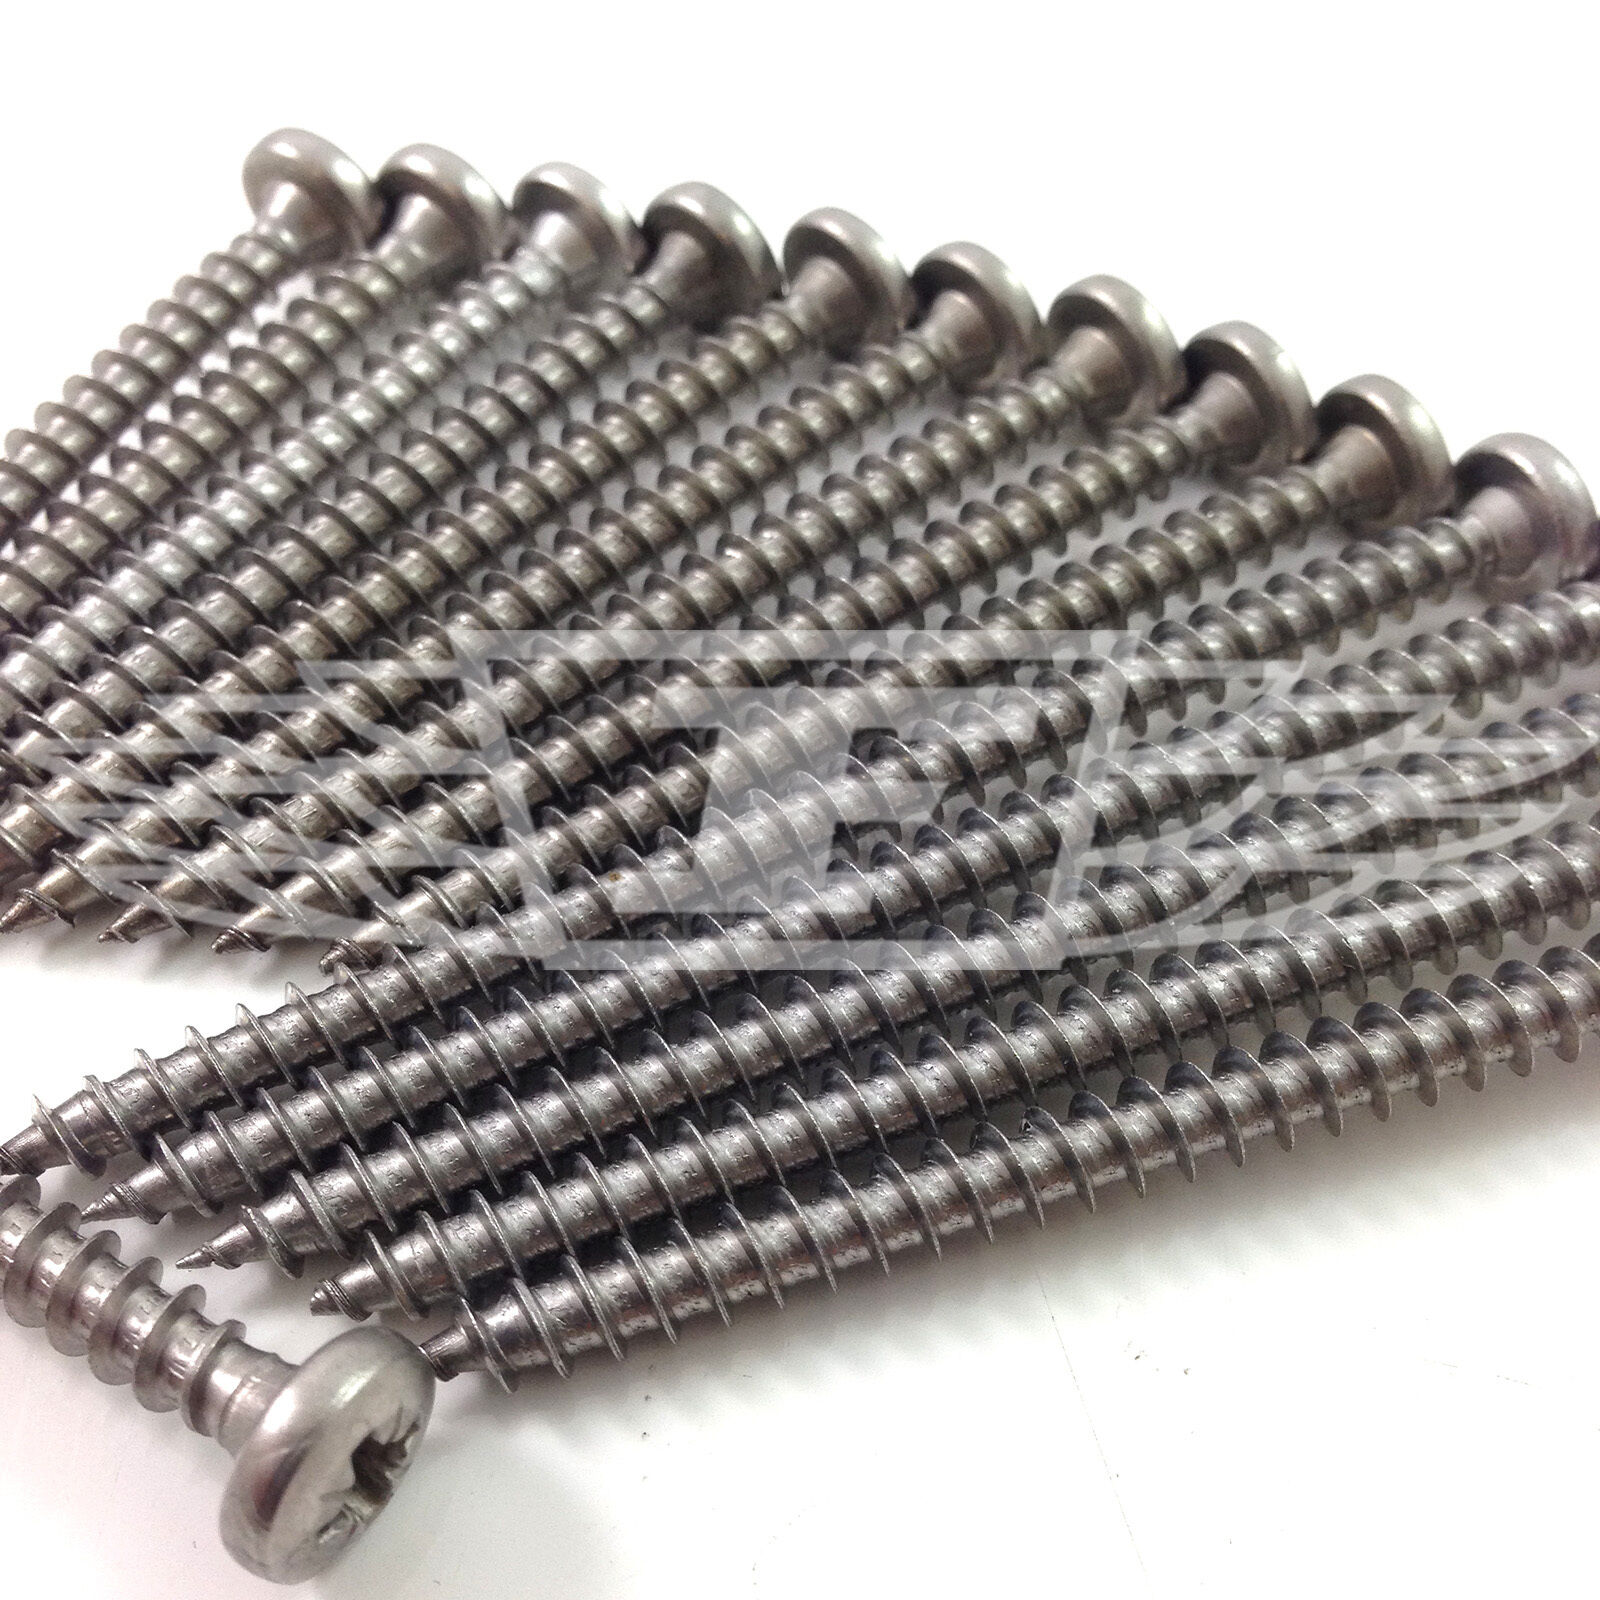 STAINLESS STEEL A2 POZI PAN HEAD ROOFING SCREWS - CHOICE OF 2